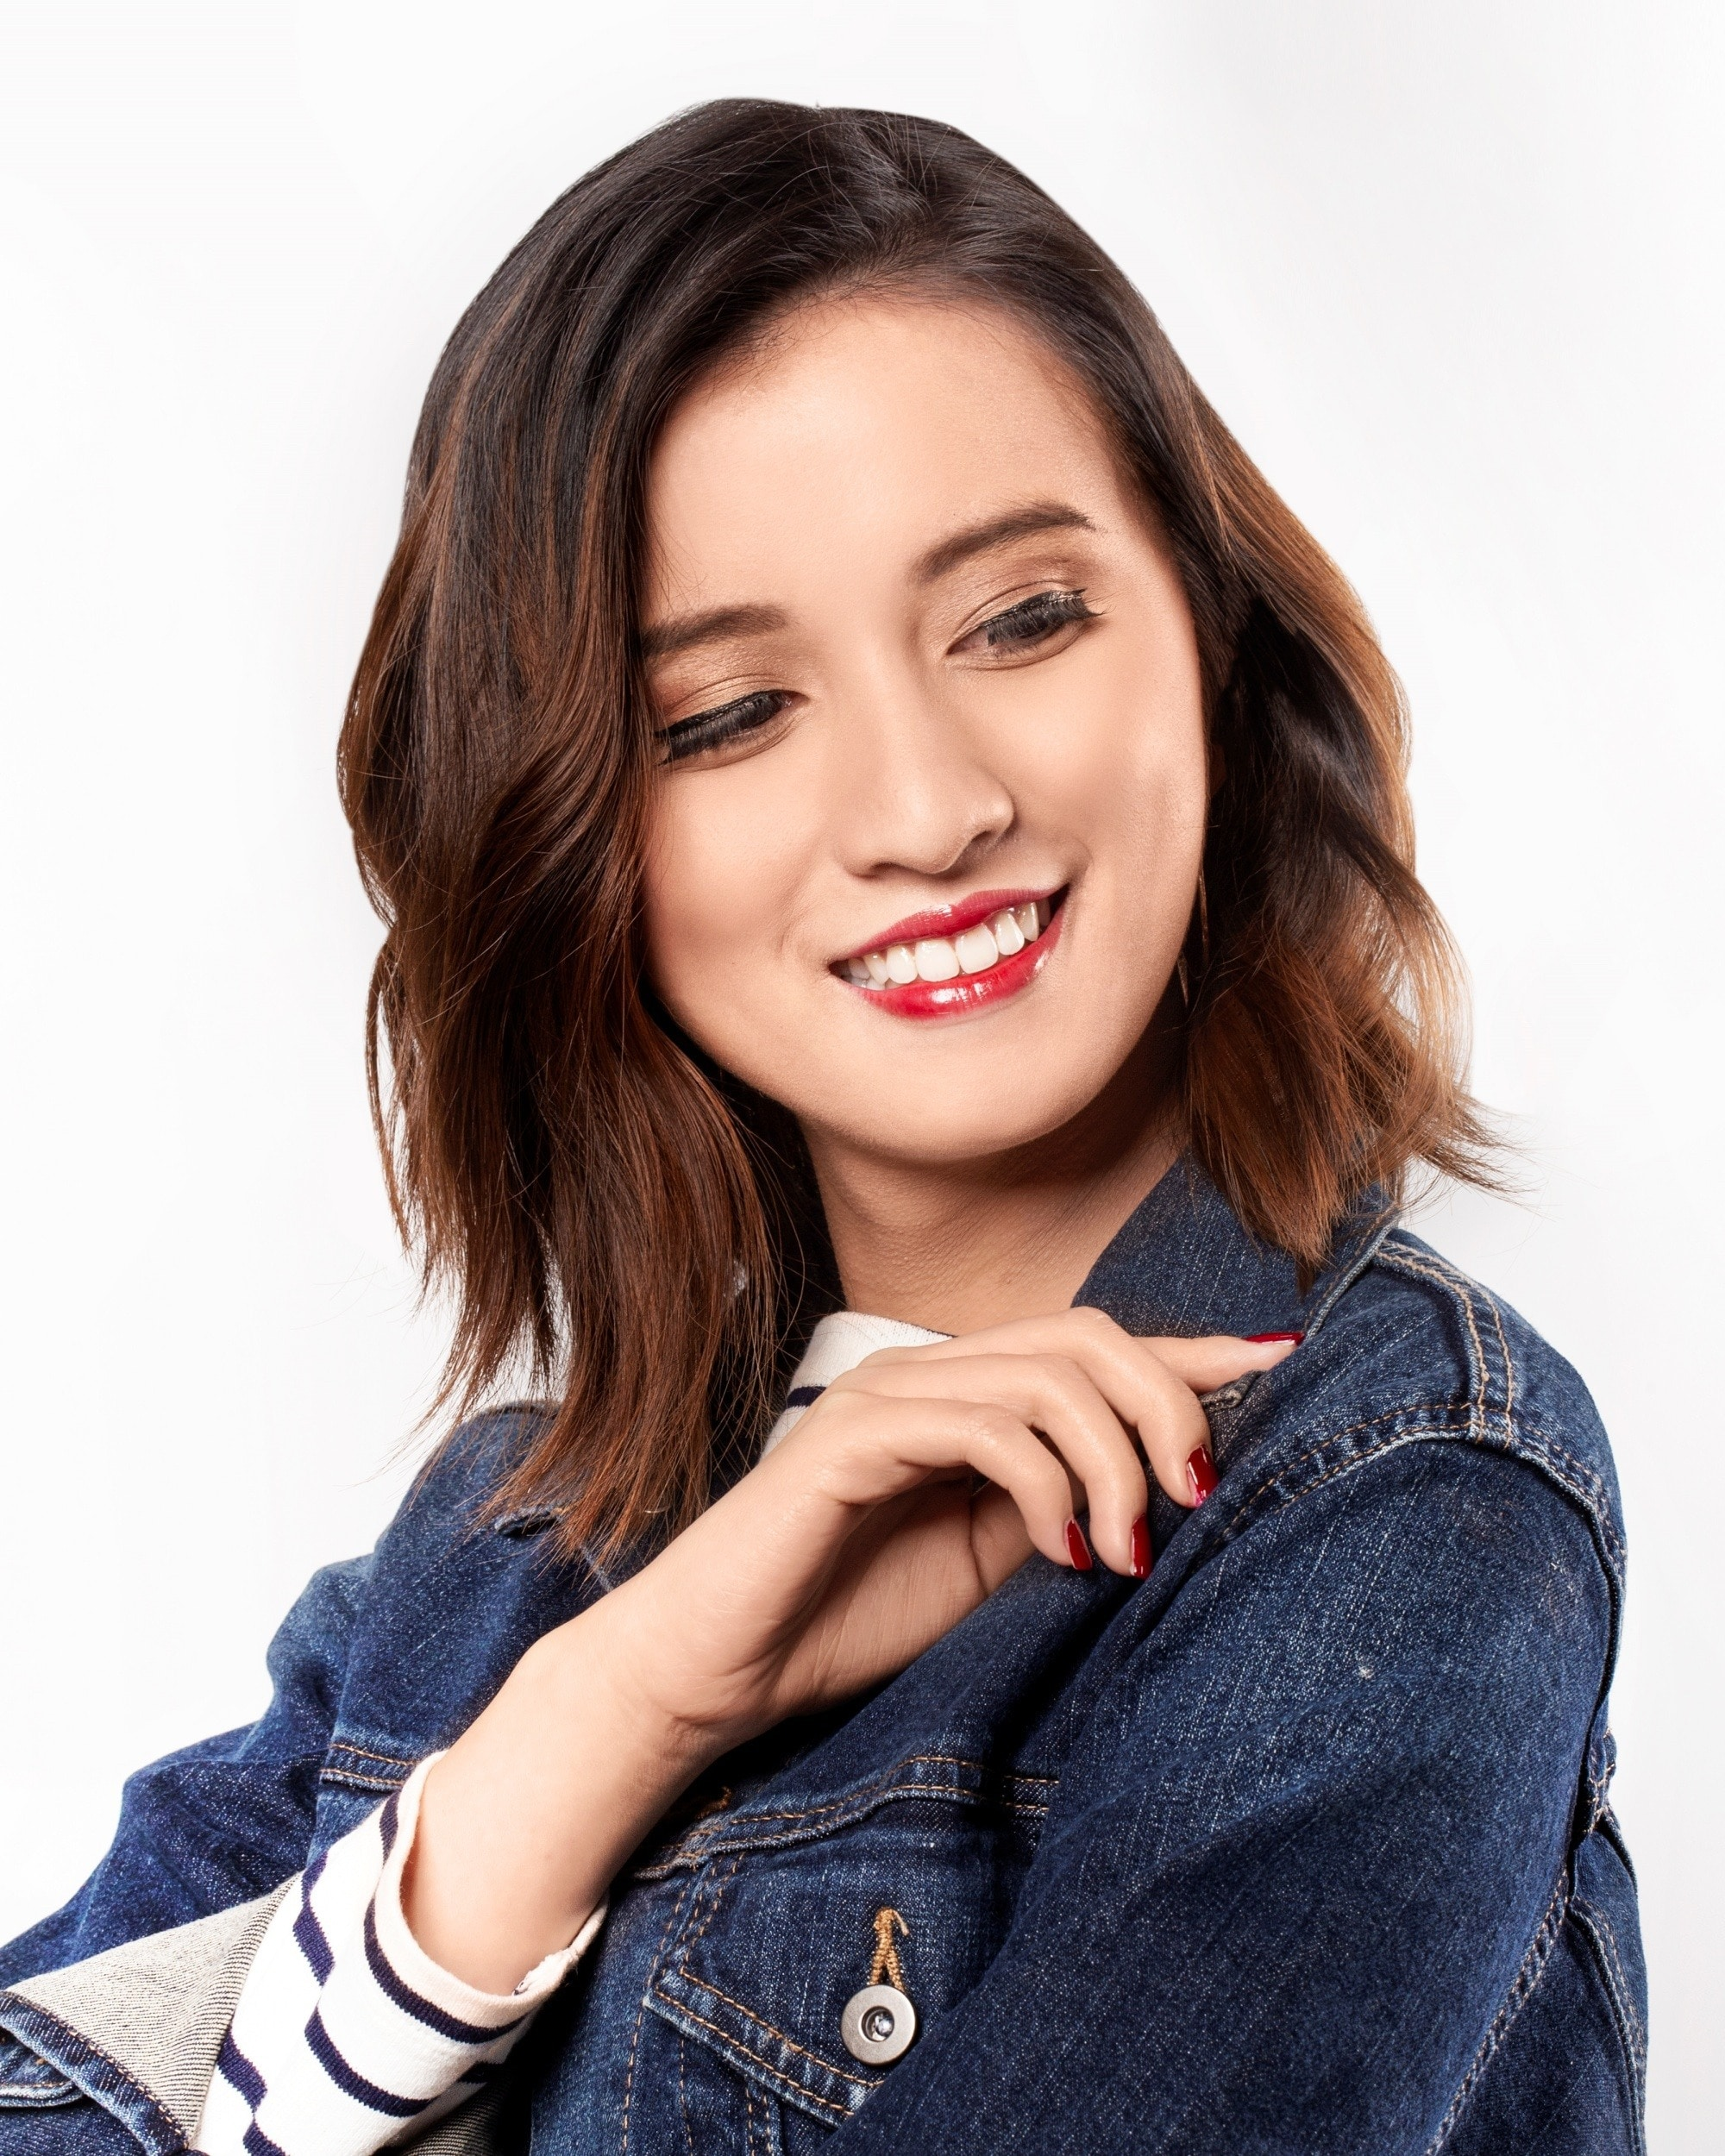 Asian woman with a tousled choppy bob hairstyle wearing a denim jacket